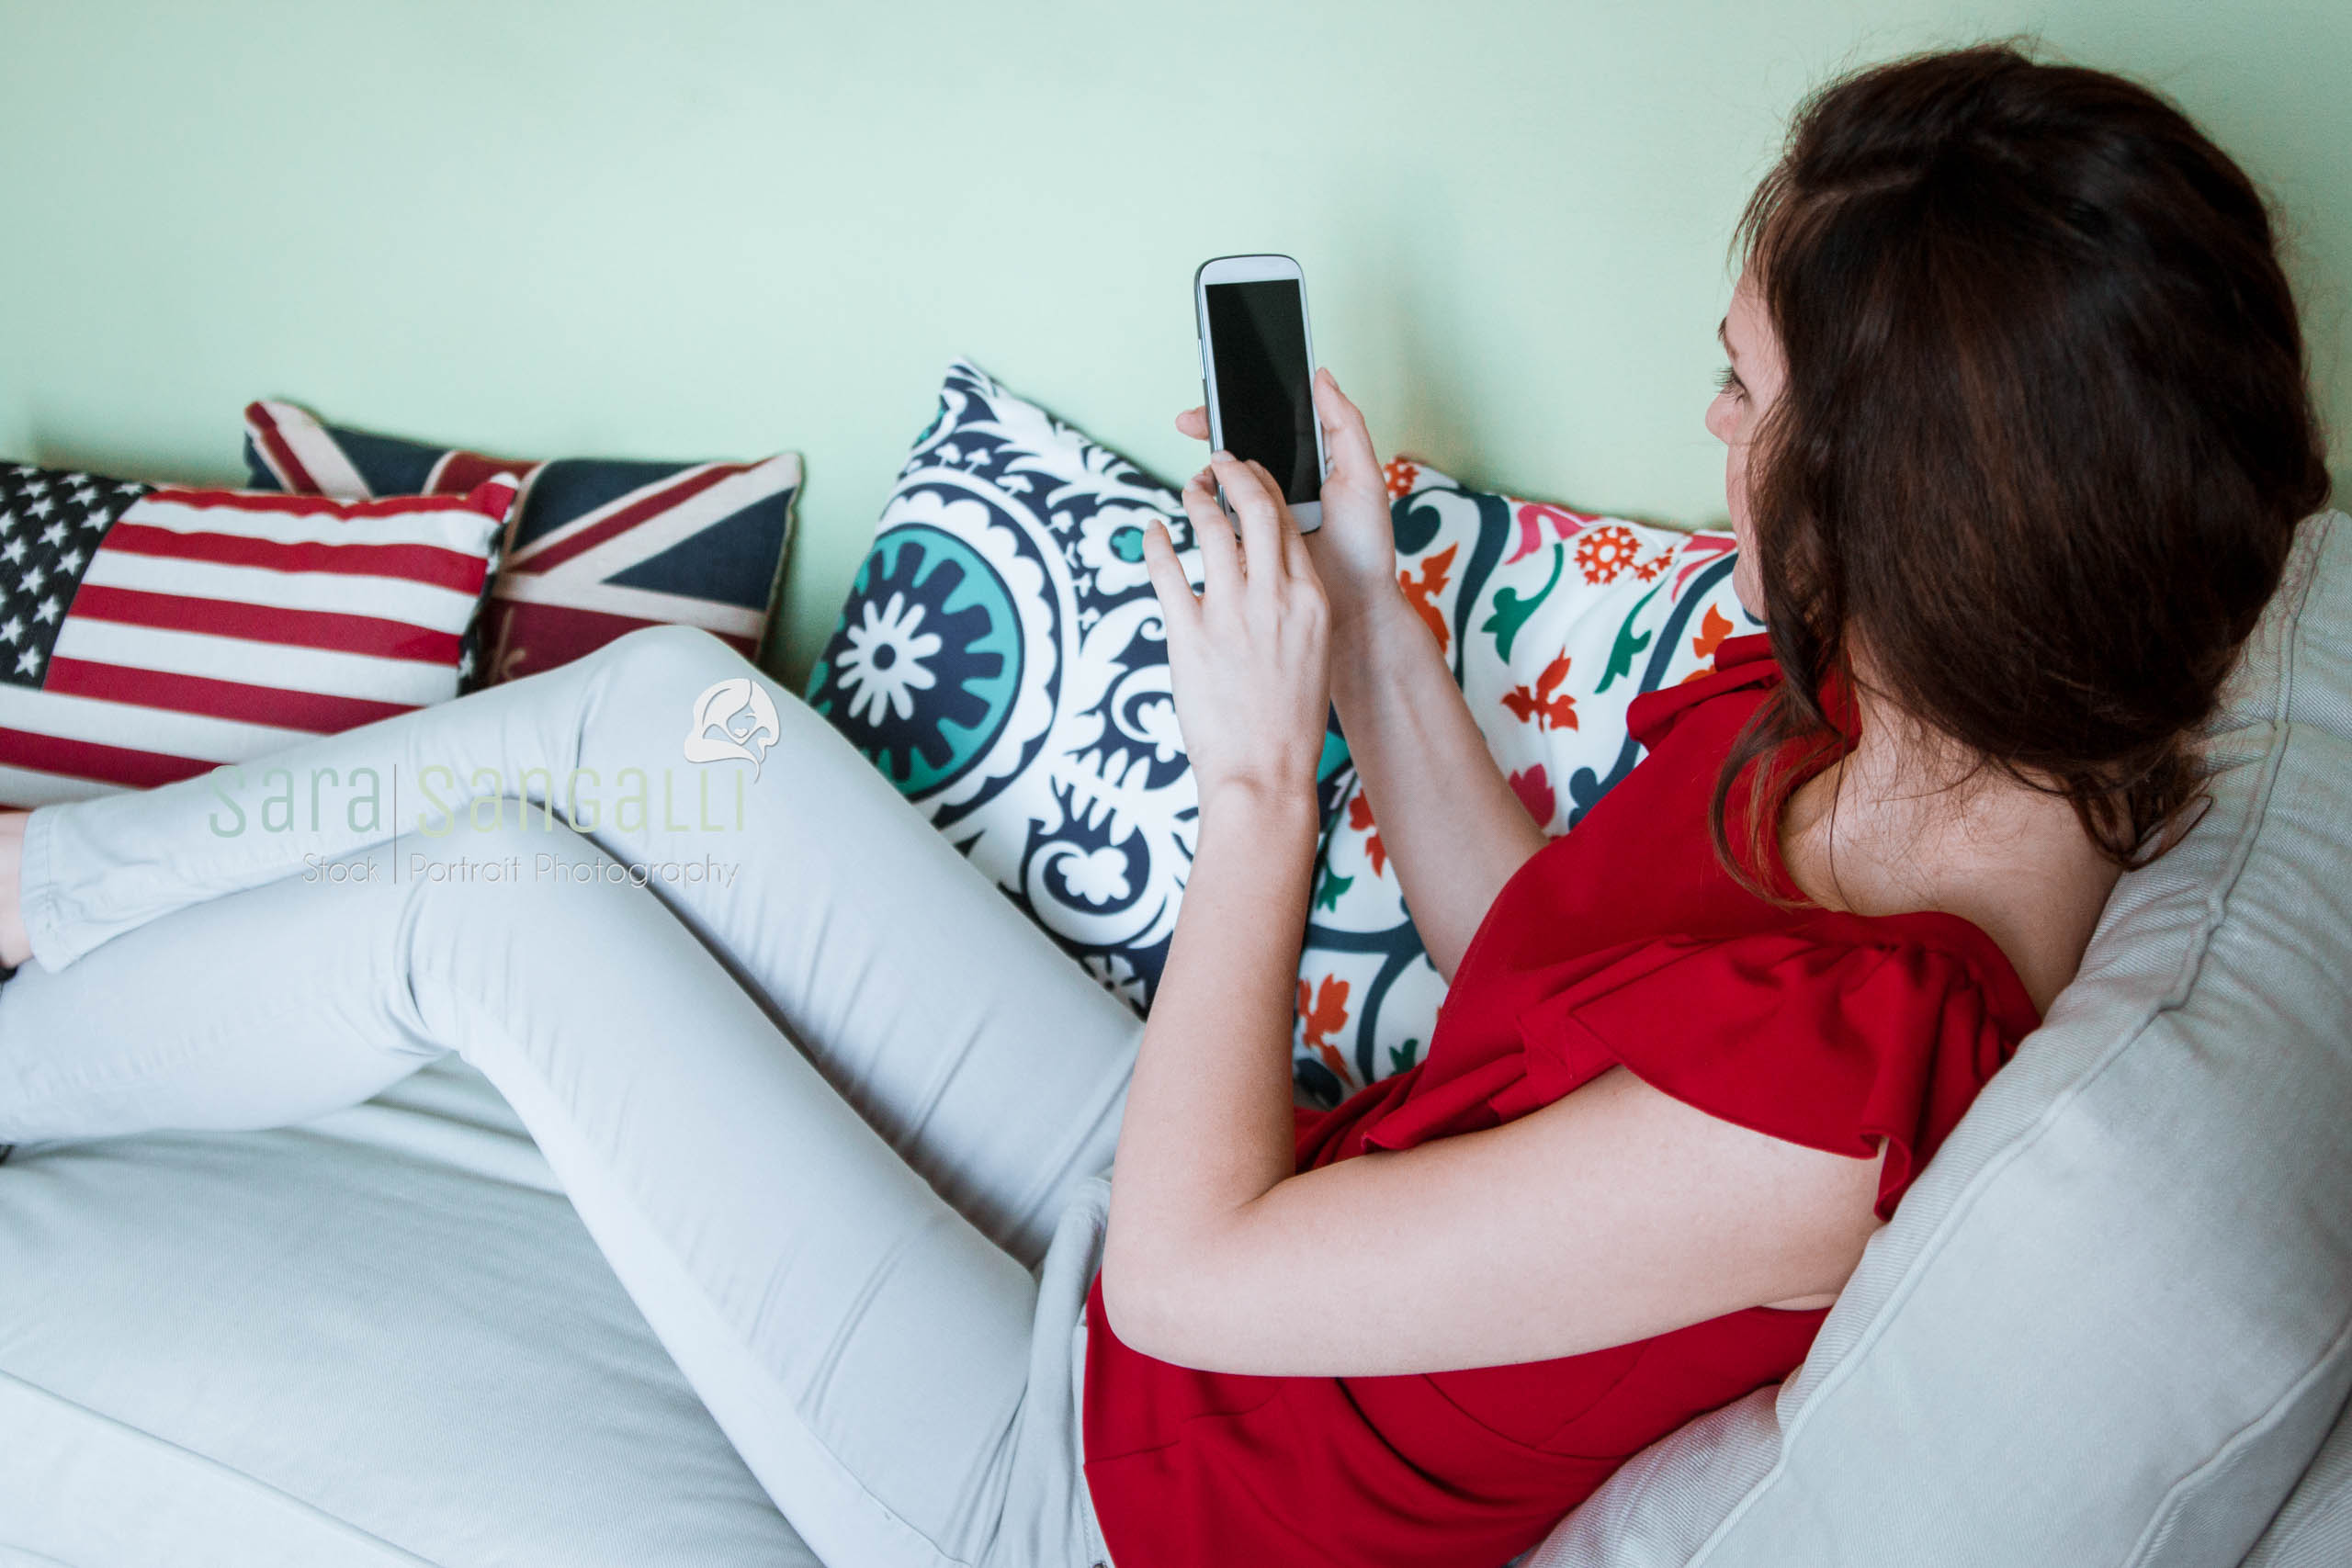 Brunette holding smartphone while sitting on a couch